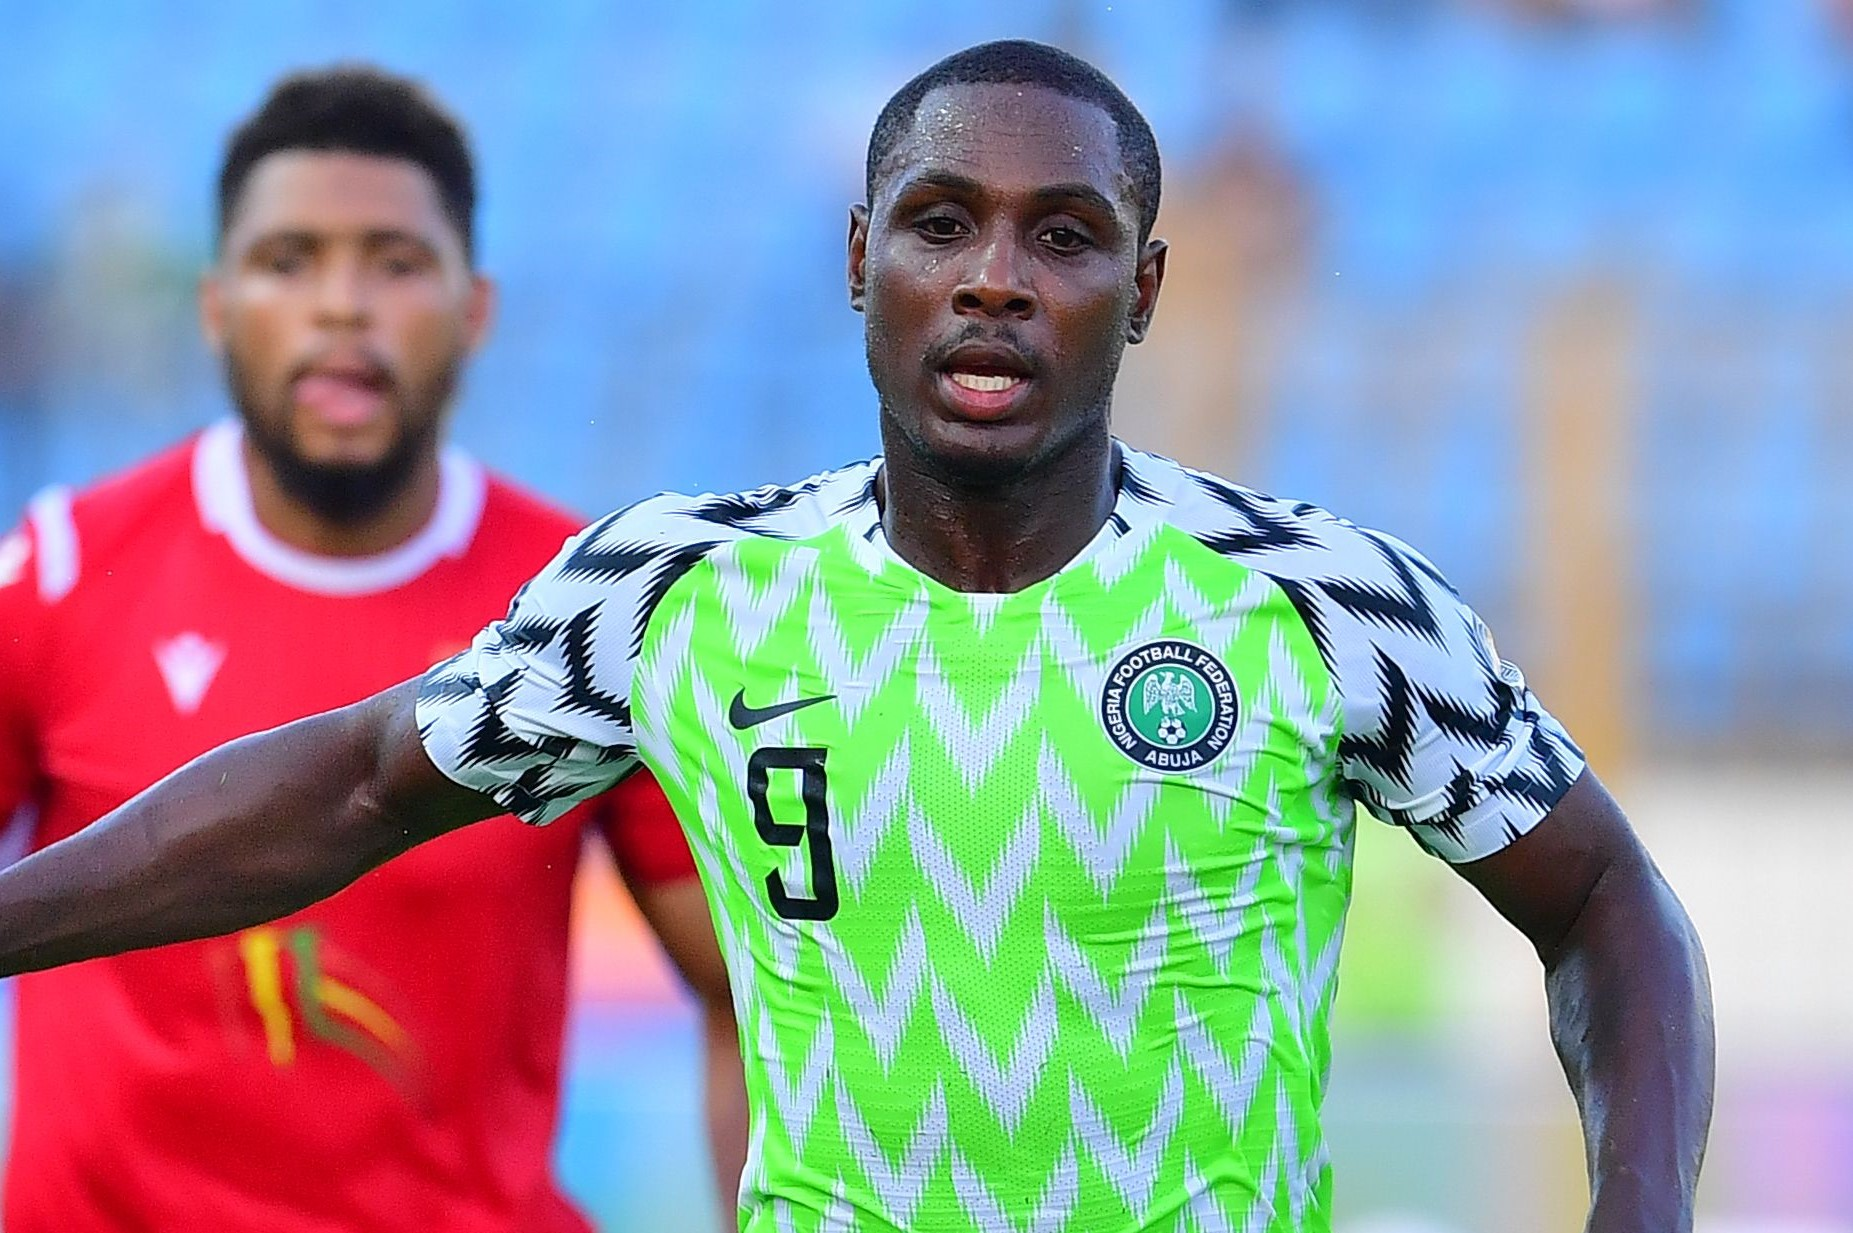 Which English club did Odion Ighalo NOT play for?